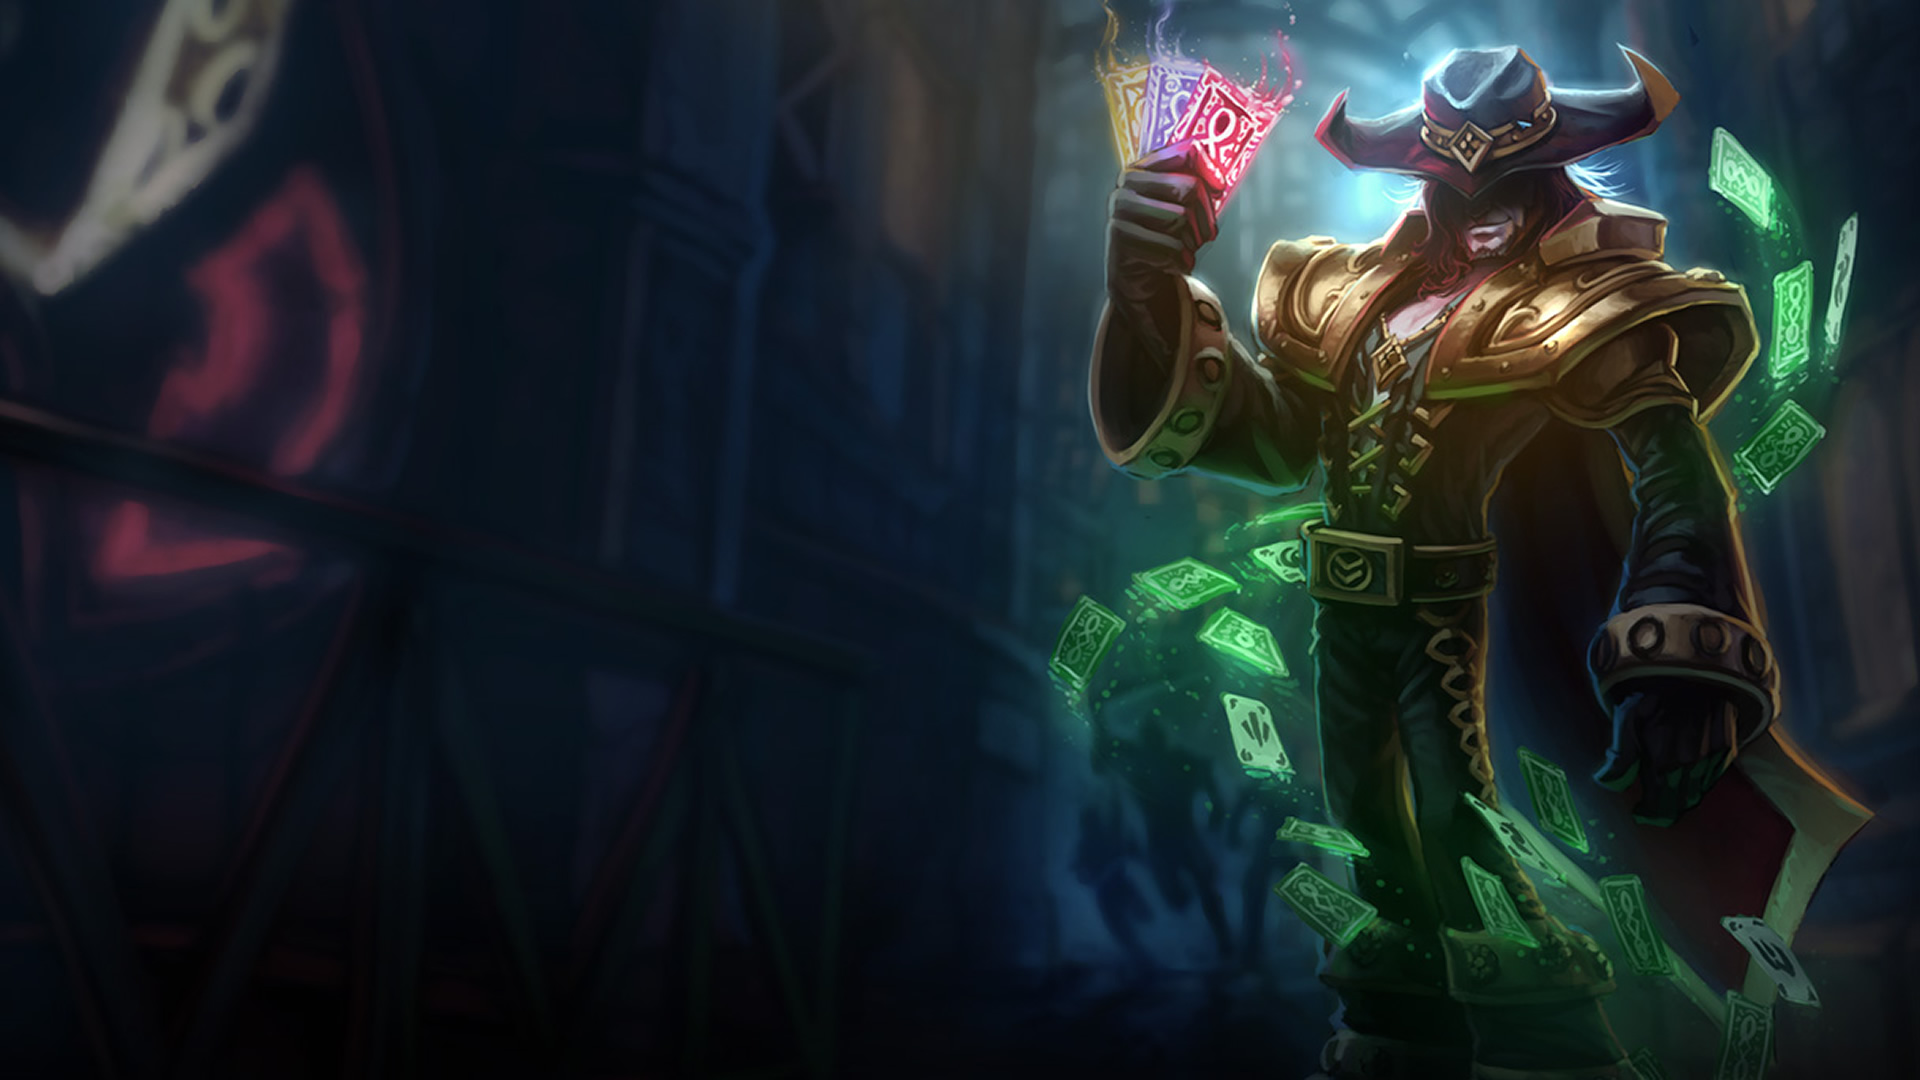 Twisted fate classic old wallpaper leaguesplash twisted fate classic old voltagebd Images